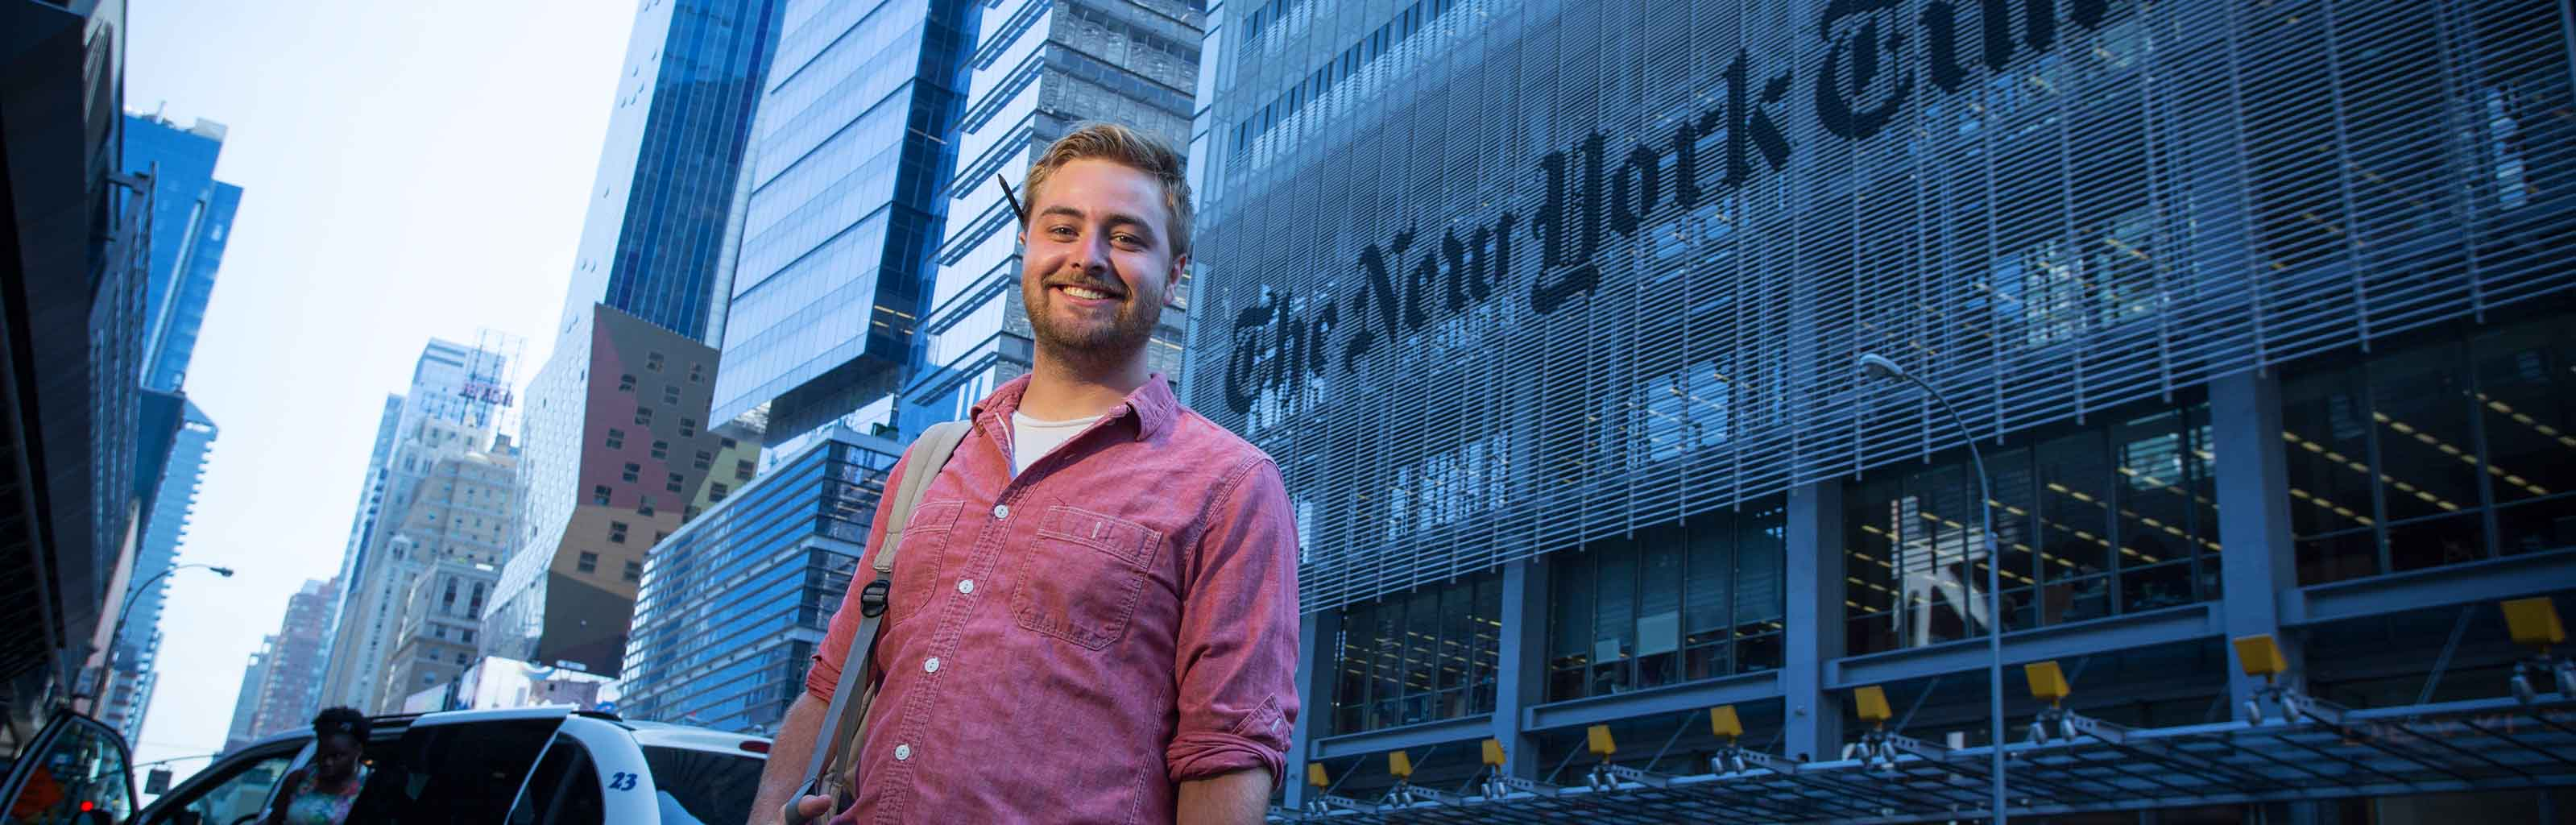 An IU Alumnus standing in front of the New York Times building.